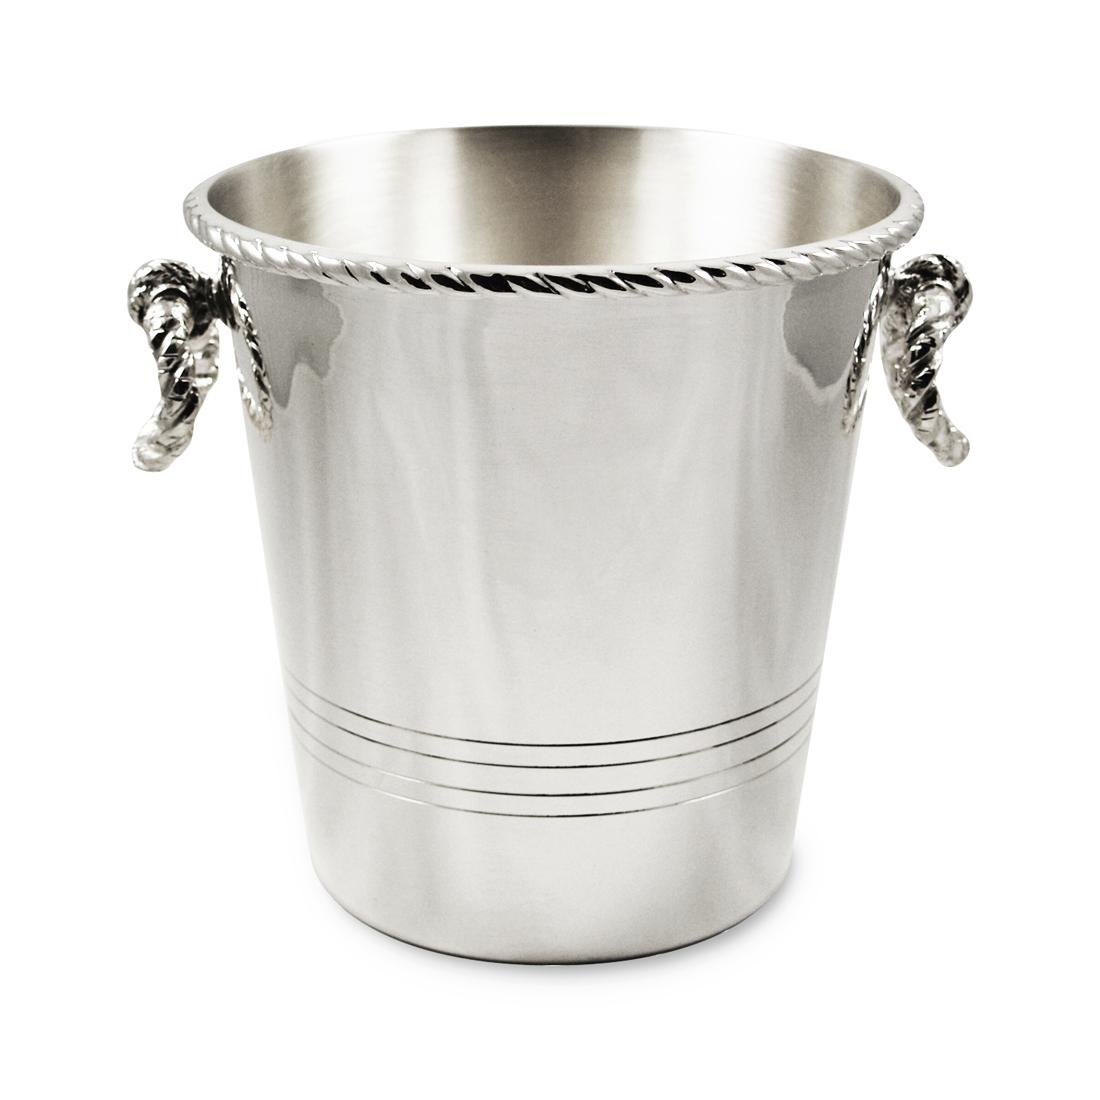 Orfevra Silver Plated Champagne Cooler in Rope